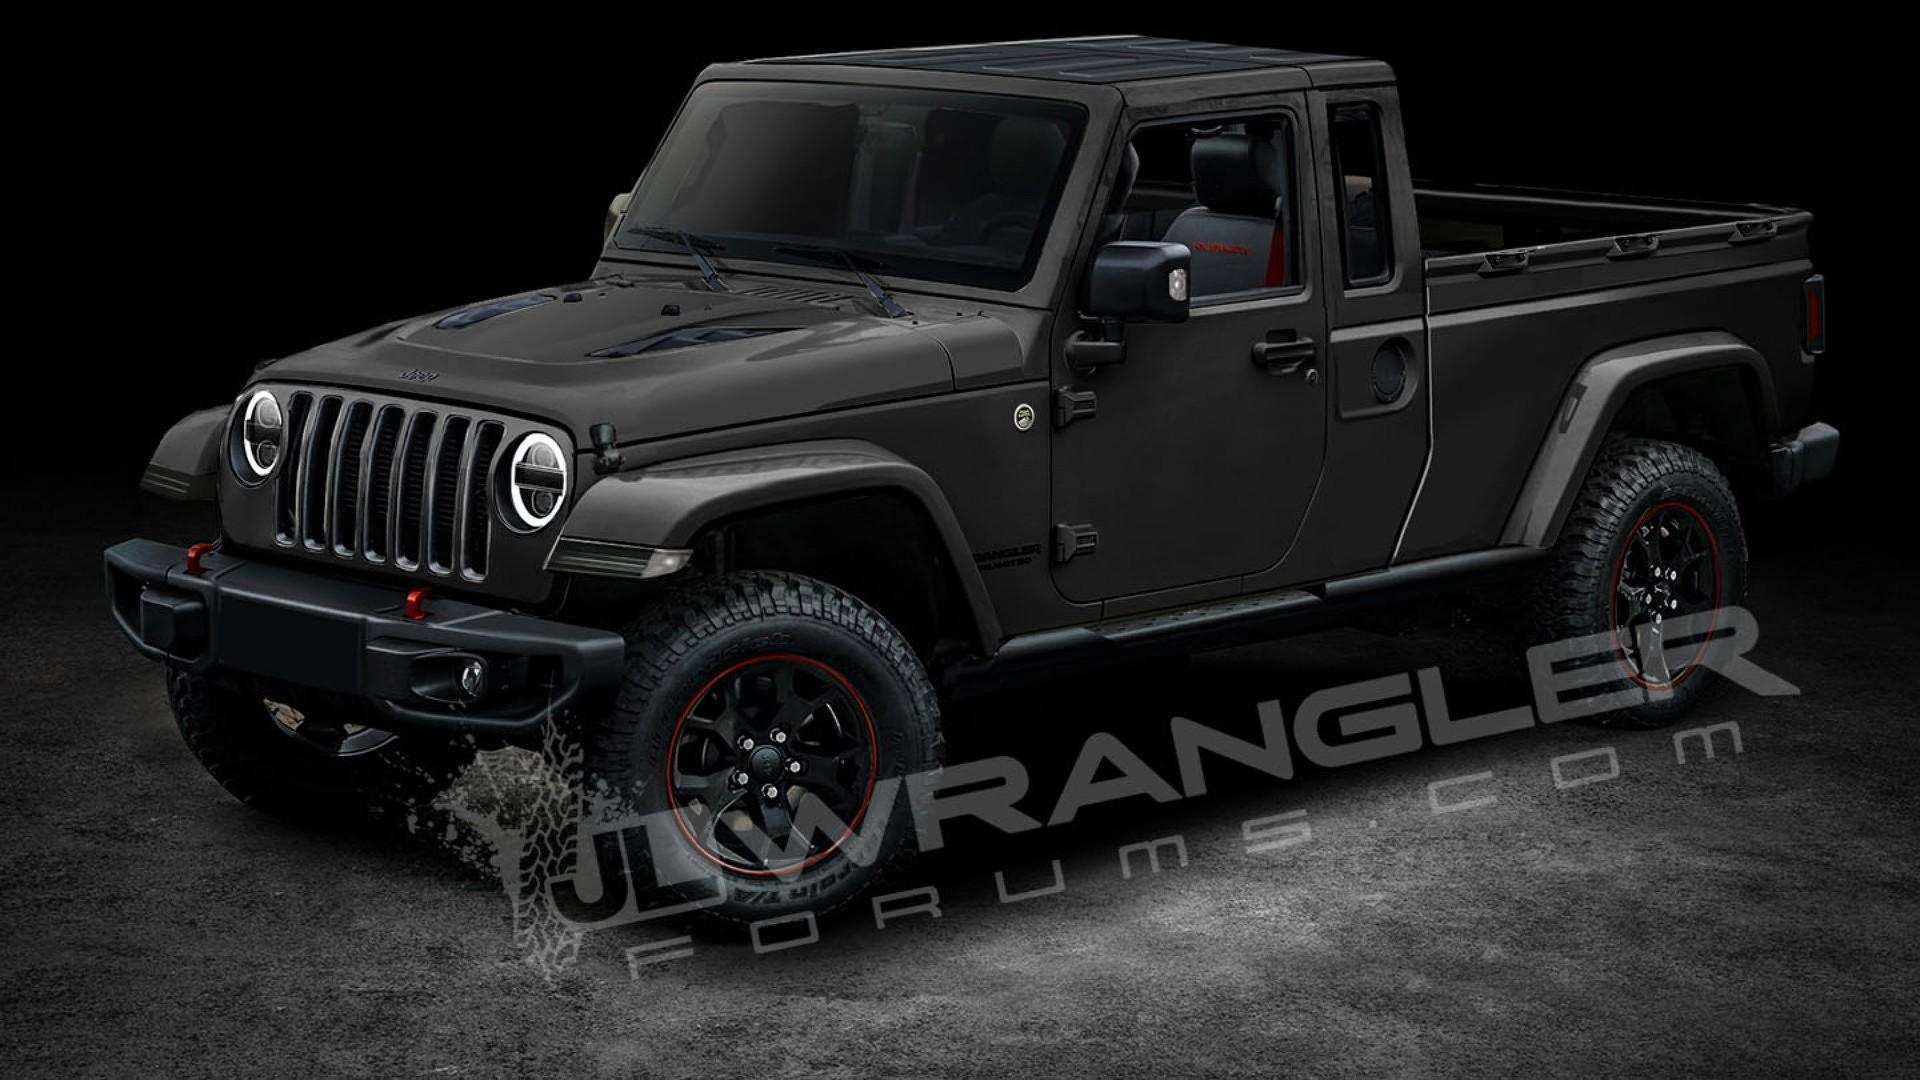 83 Great Best Jeep Wrangler Pickup 2019 Concept Redesign And Review Reviews with Best Jeep Wrangler Pickup 2019 Concept Redesign And Review